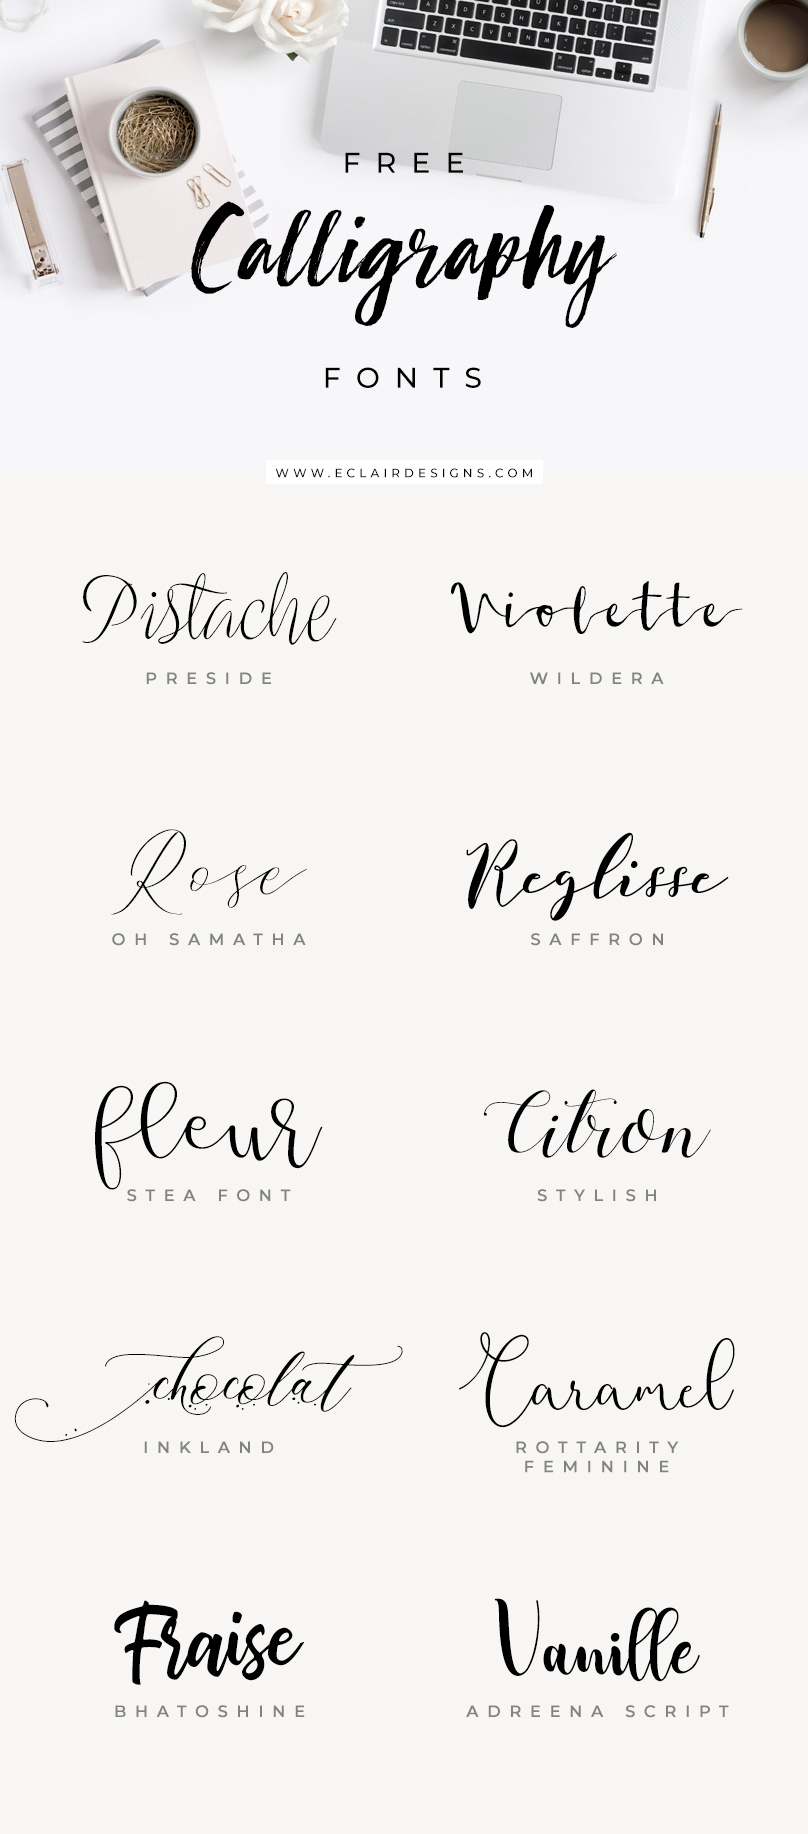 Calligraphy Fonts List Eclair Designs 10 Free Calligraphy Fonts